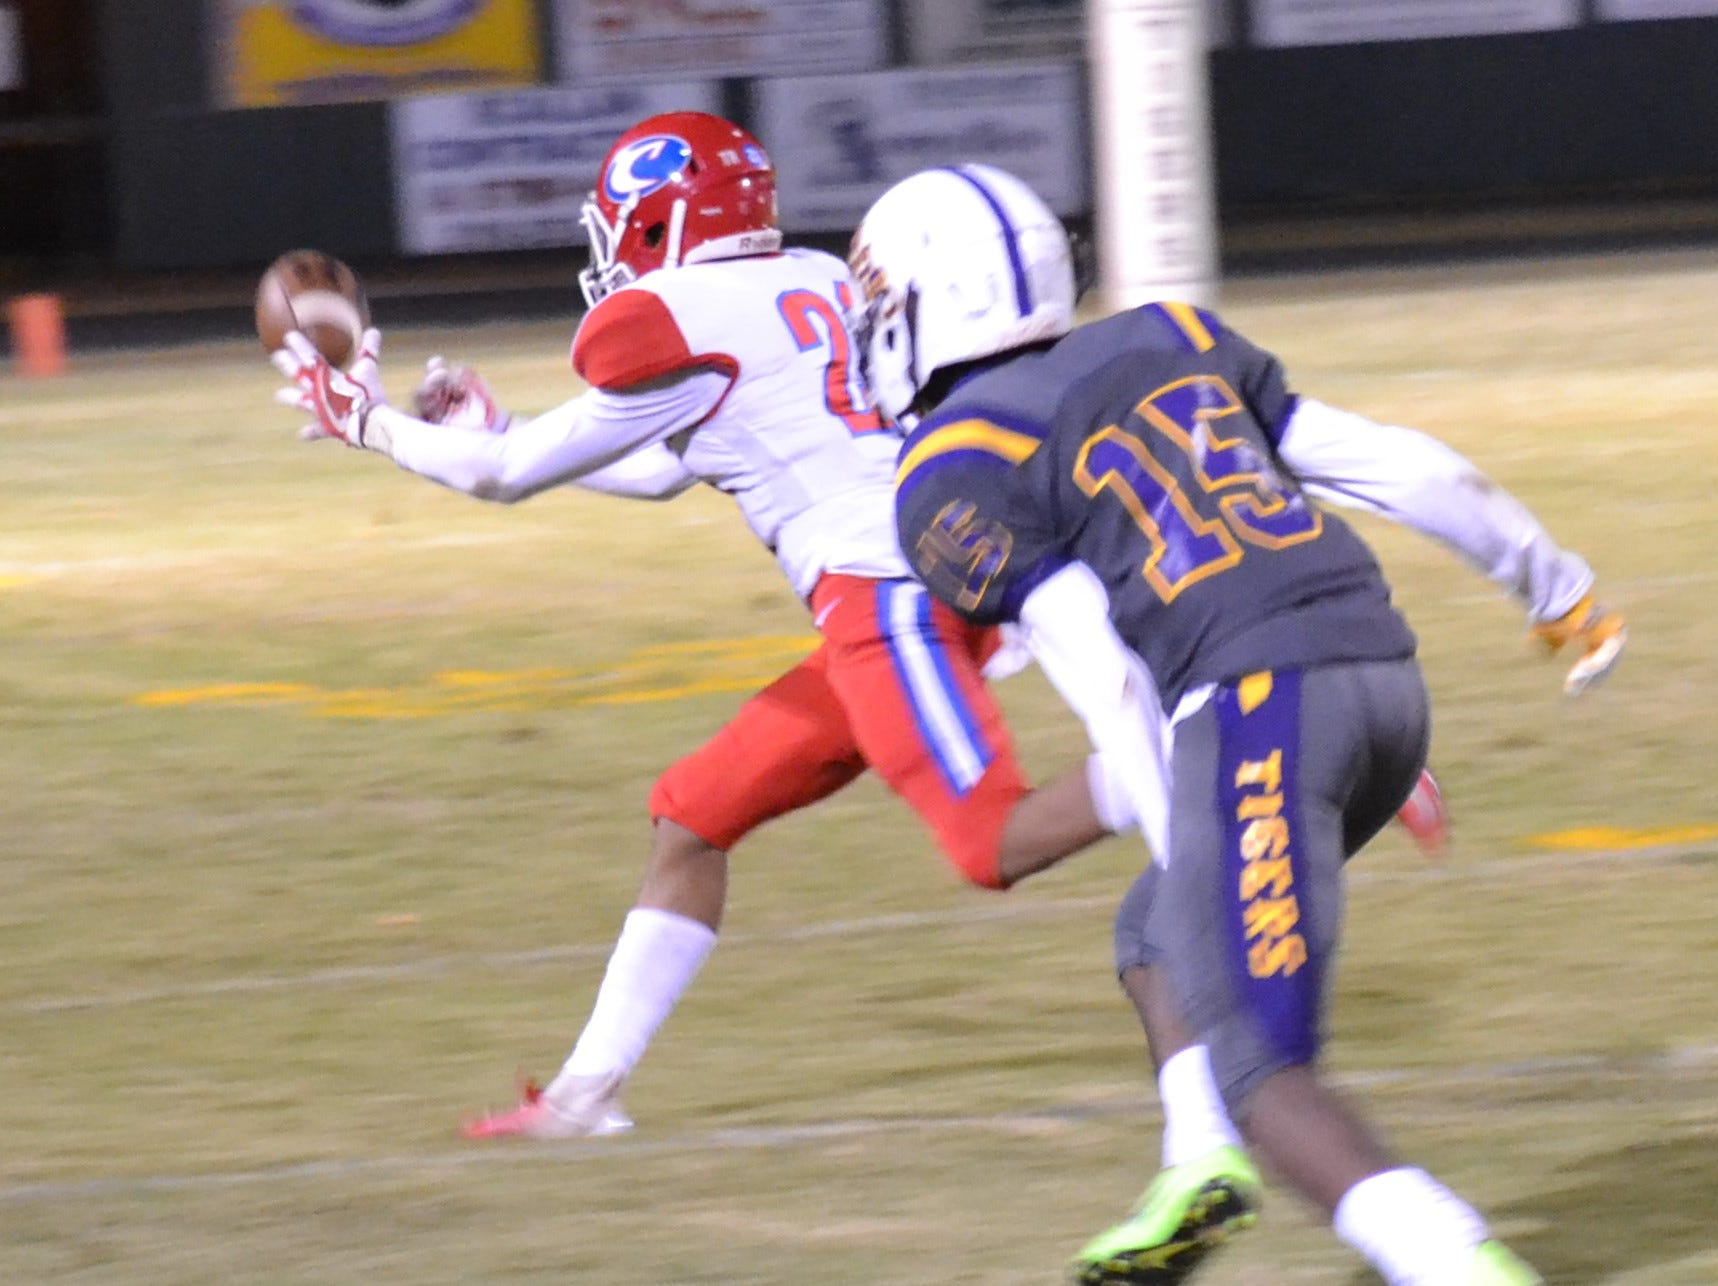 Spartan defender Quinton Green (21) just missed getting a pick-6 interception. Marksville and Caldwell met in the regular season finale Friday night with Caldwell edging Marksville 13-8.